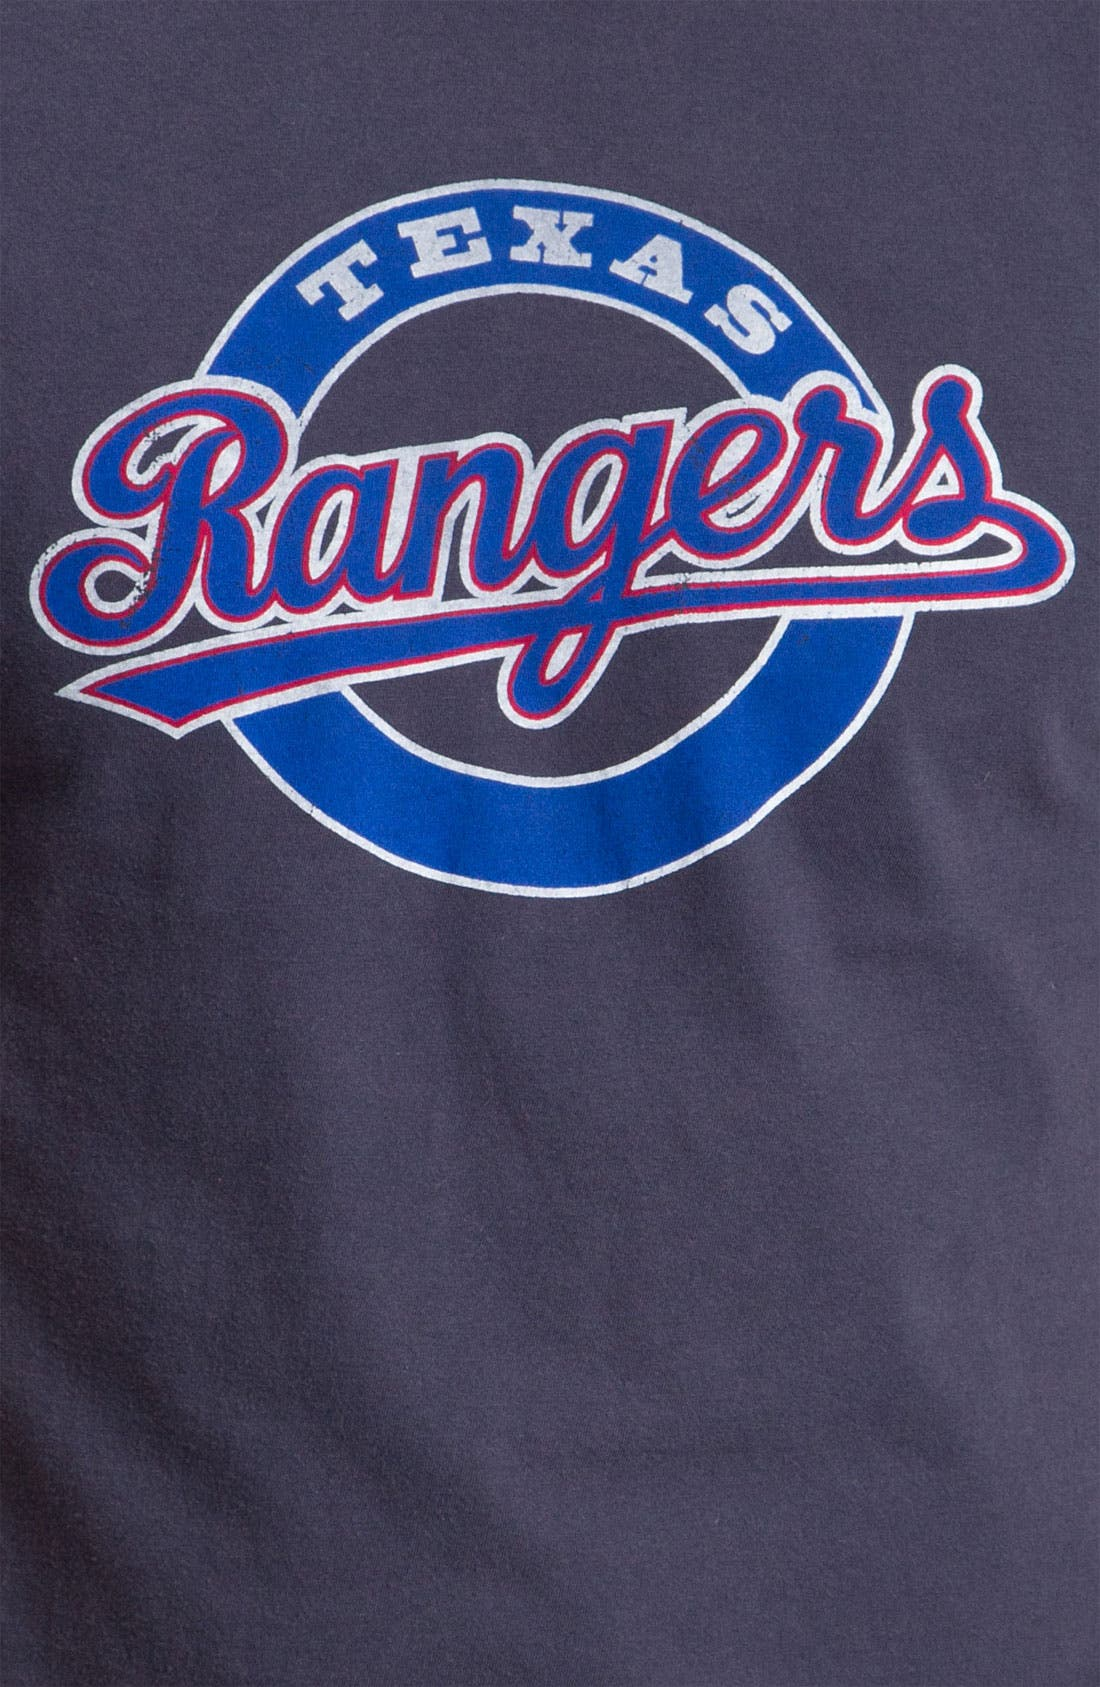 'Texas Rangers' Regular Fit Crewneck T-Shirt,                             Alternate thumbnail 129, color,